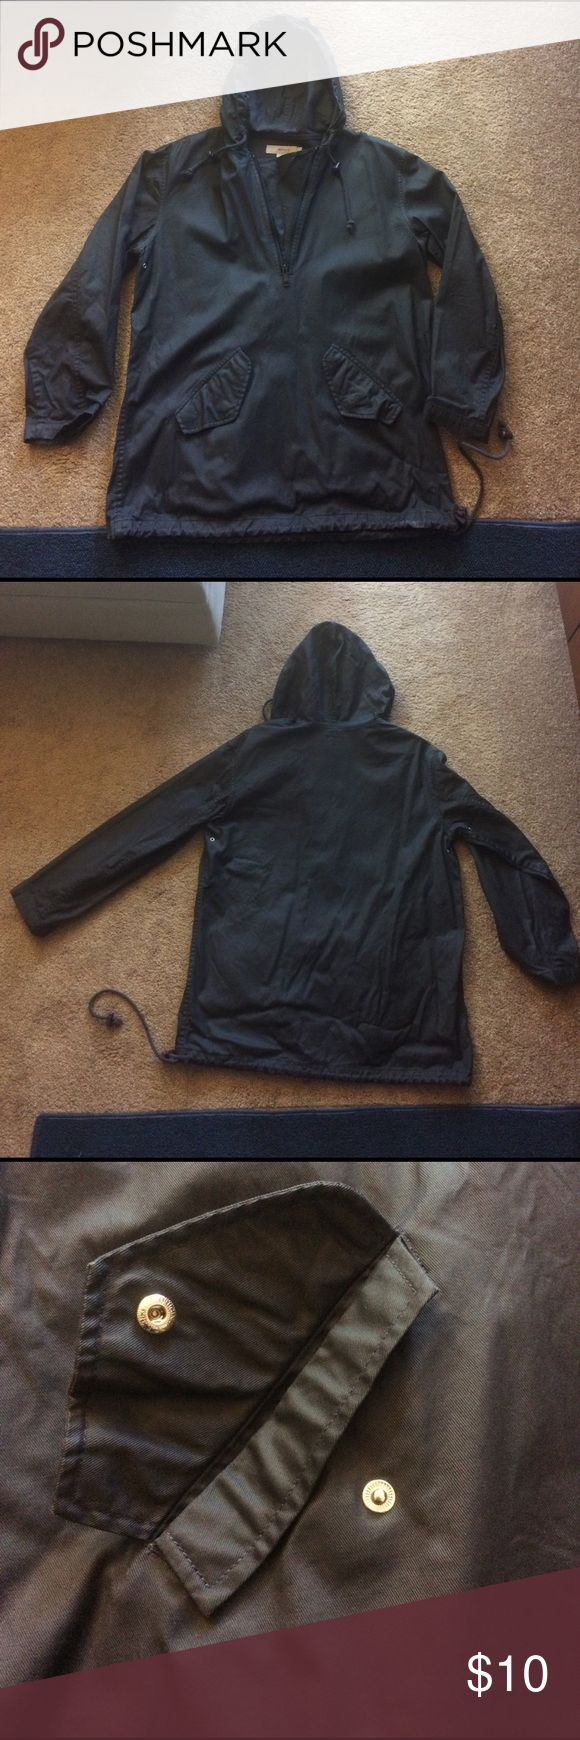 J. Crew Men's Rain Jacket Black Used This J. Crew rain jacket is perfect for those spring rainstorms. It is light weight and even has a 3/4 zipper neckline. It is used (wear shown in pictures) and has wear around the edge of the sleeves and edges. The label also has someone's name written on it (shown in pictures). It is used but can still be worn! J. Crew Jackets & Coats Raincoats